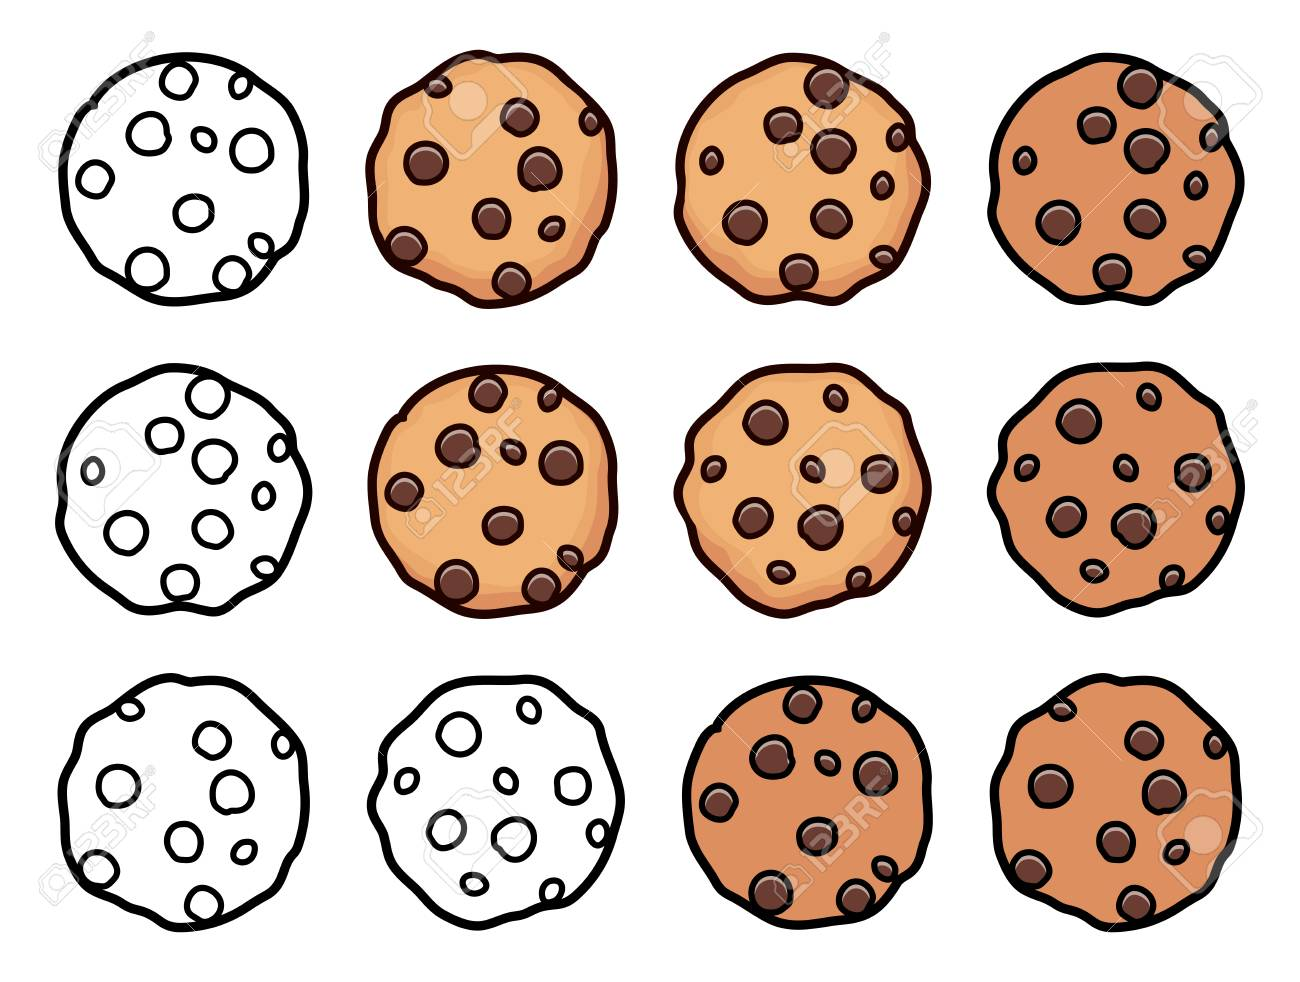 Vector Set Of Chocolate Chip Whole Cookies Isolated On White Royalty Free Cliparts Vectors And Stock Illustration Image 104391398